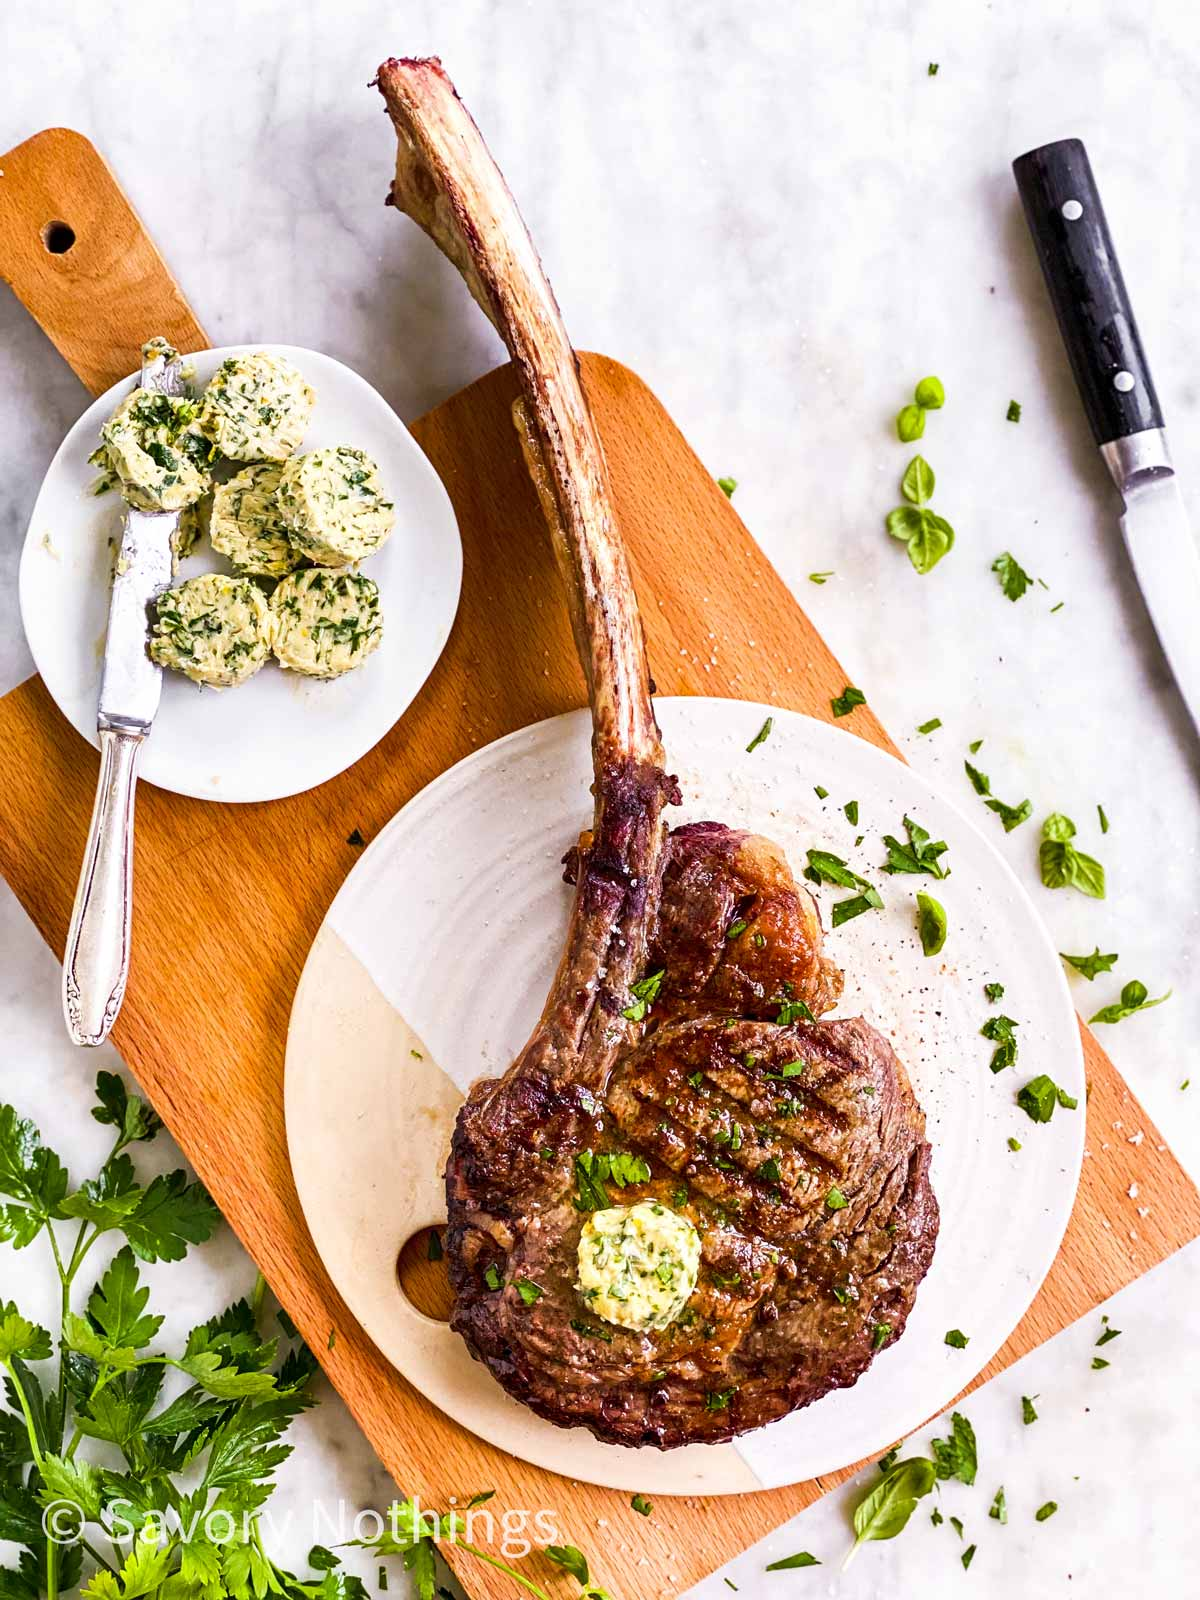 grille tomahawk steak on white platter sitting on wooden board, surrounded by steak knife, fresh parsley and garlic butter